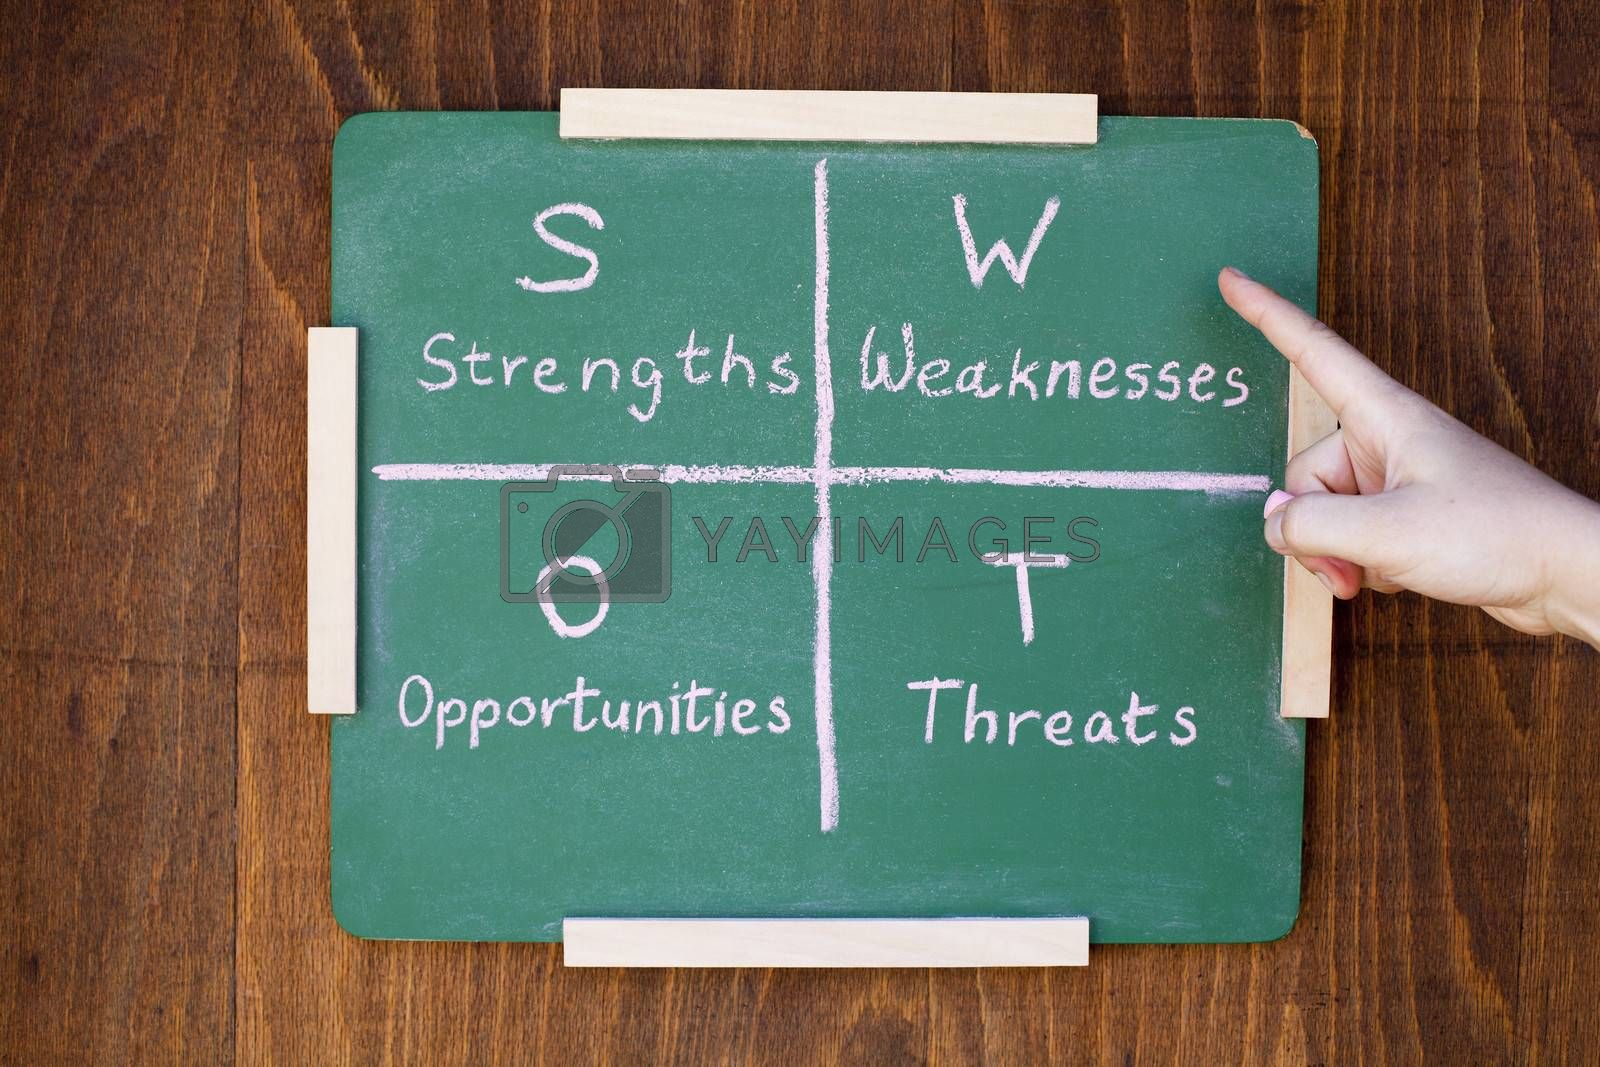 Swot analysis business strategy management process in a board